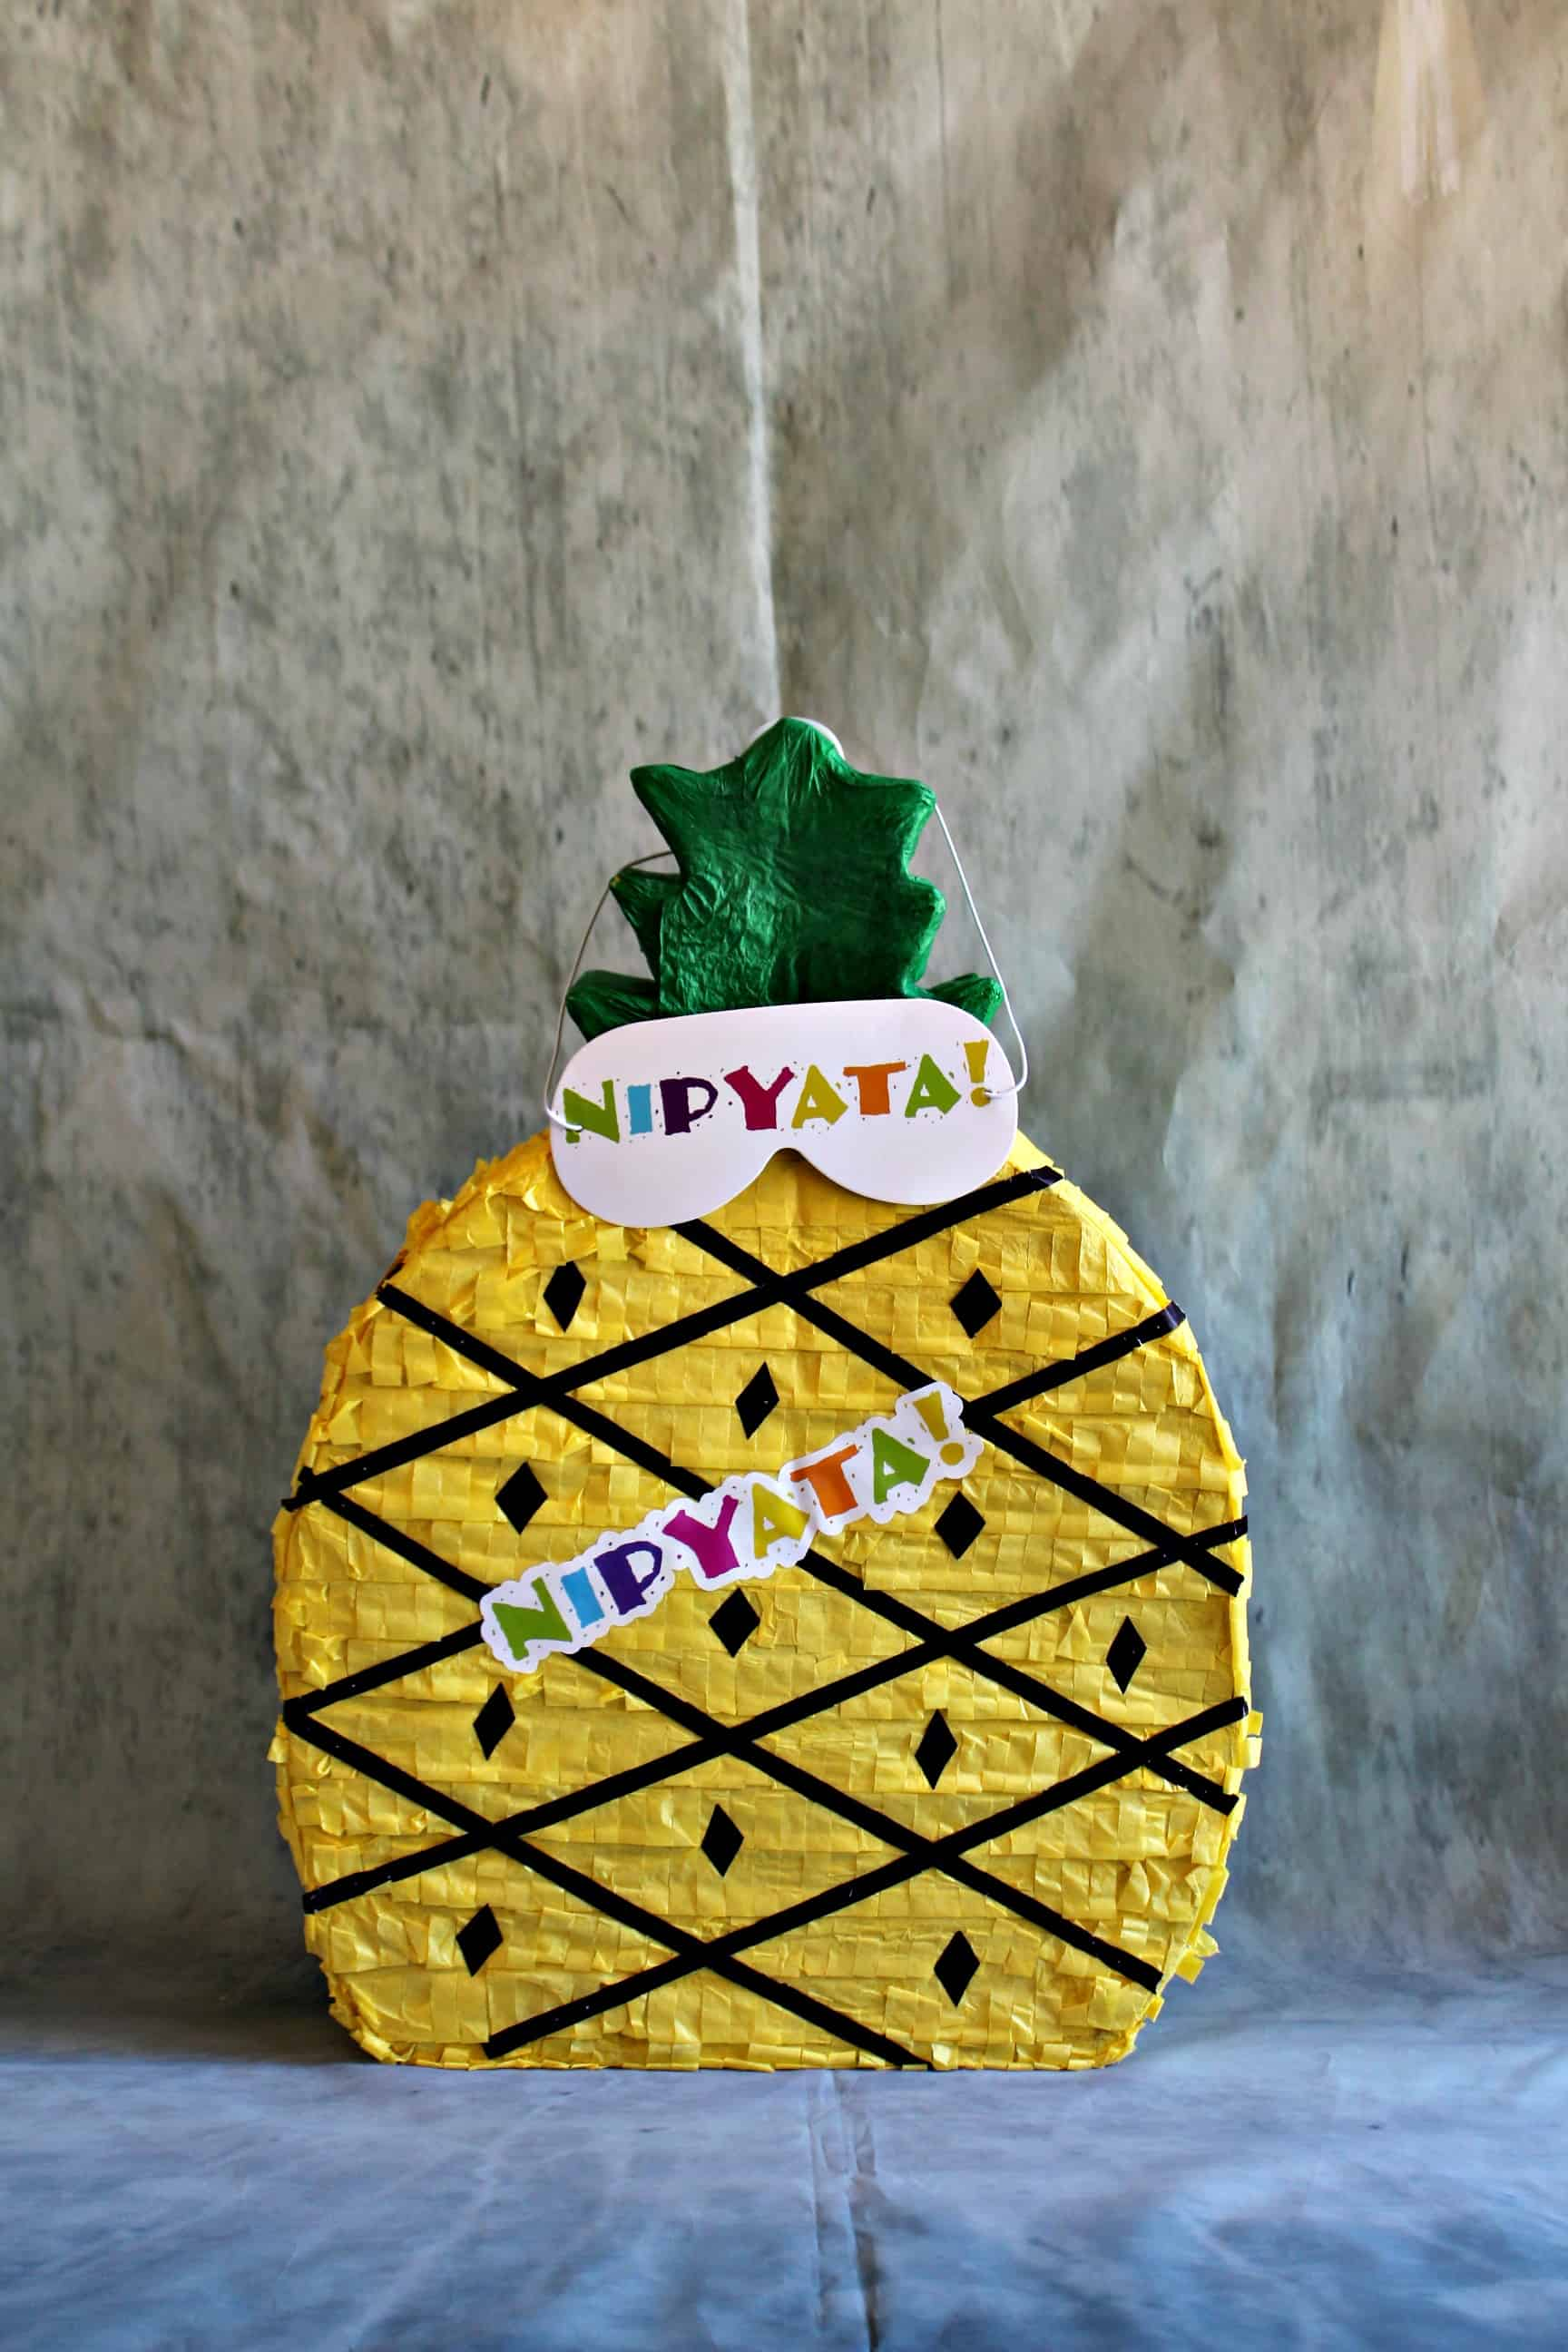 Nipyata the perfect addition to any adult summer party